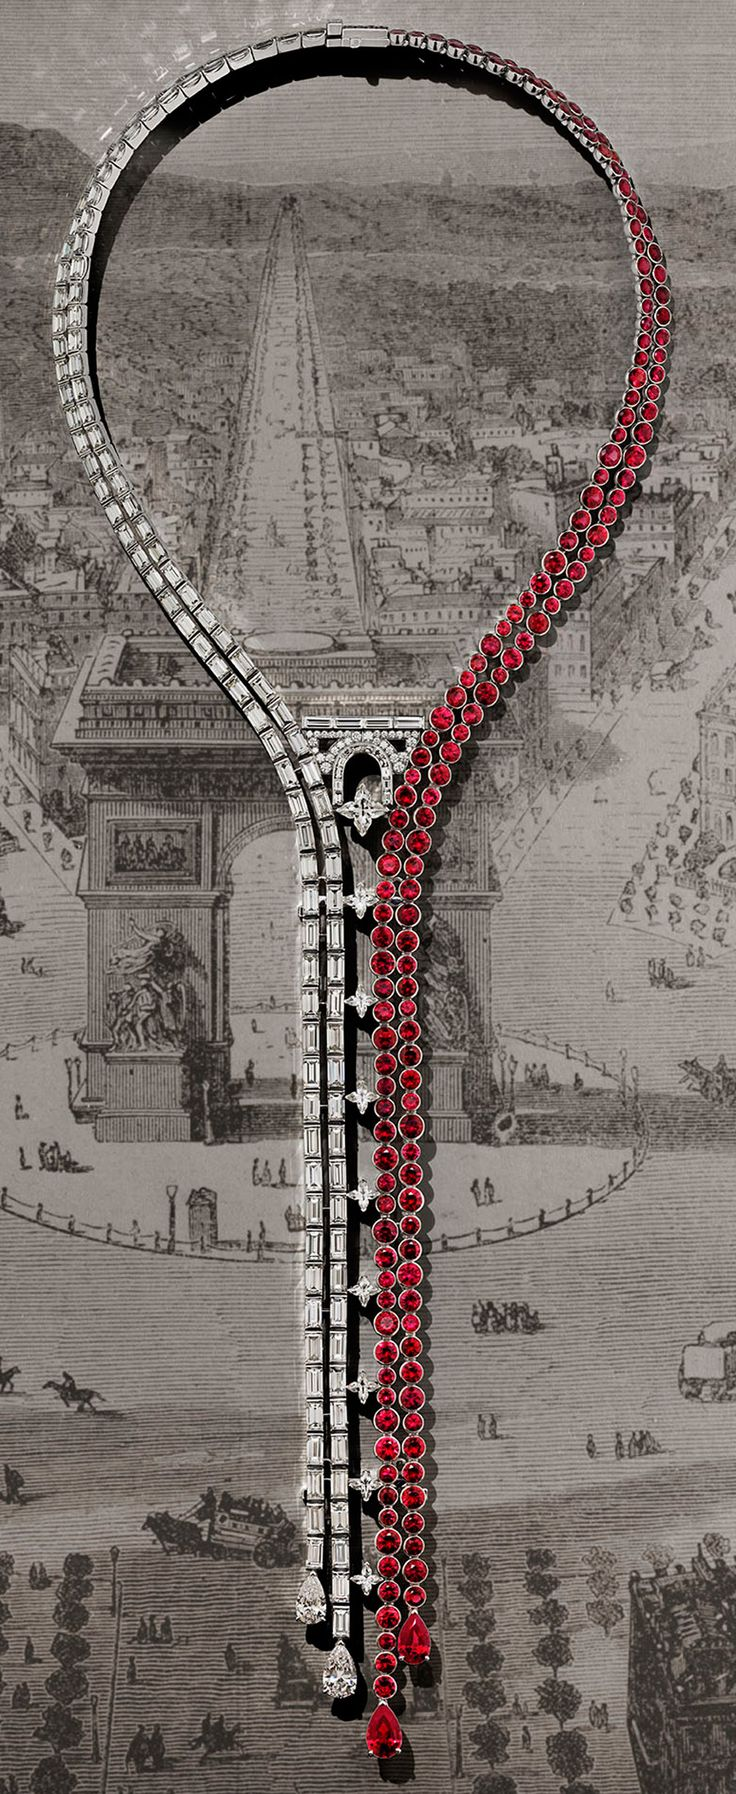 The spectacular Champs Elysées necklace by Louis Vuitton from the Escale á Paris high jewellery collection. Photograph by Coppi Barbieri for Louis Vuitton